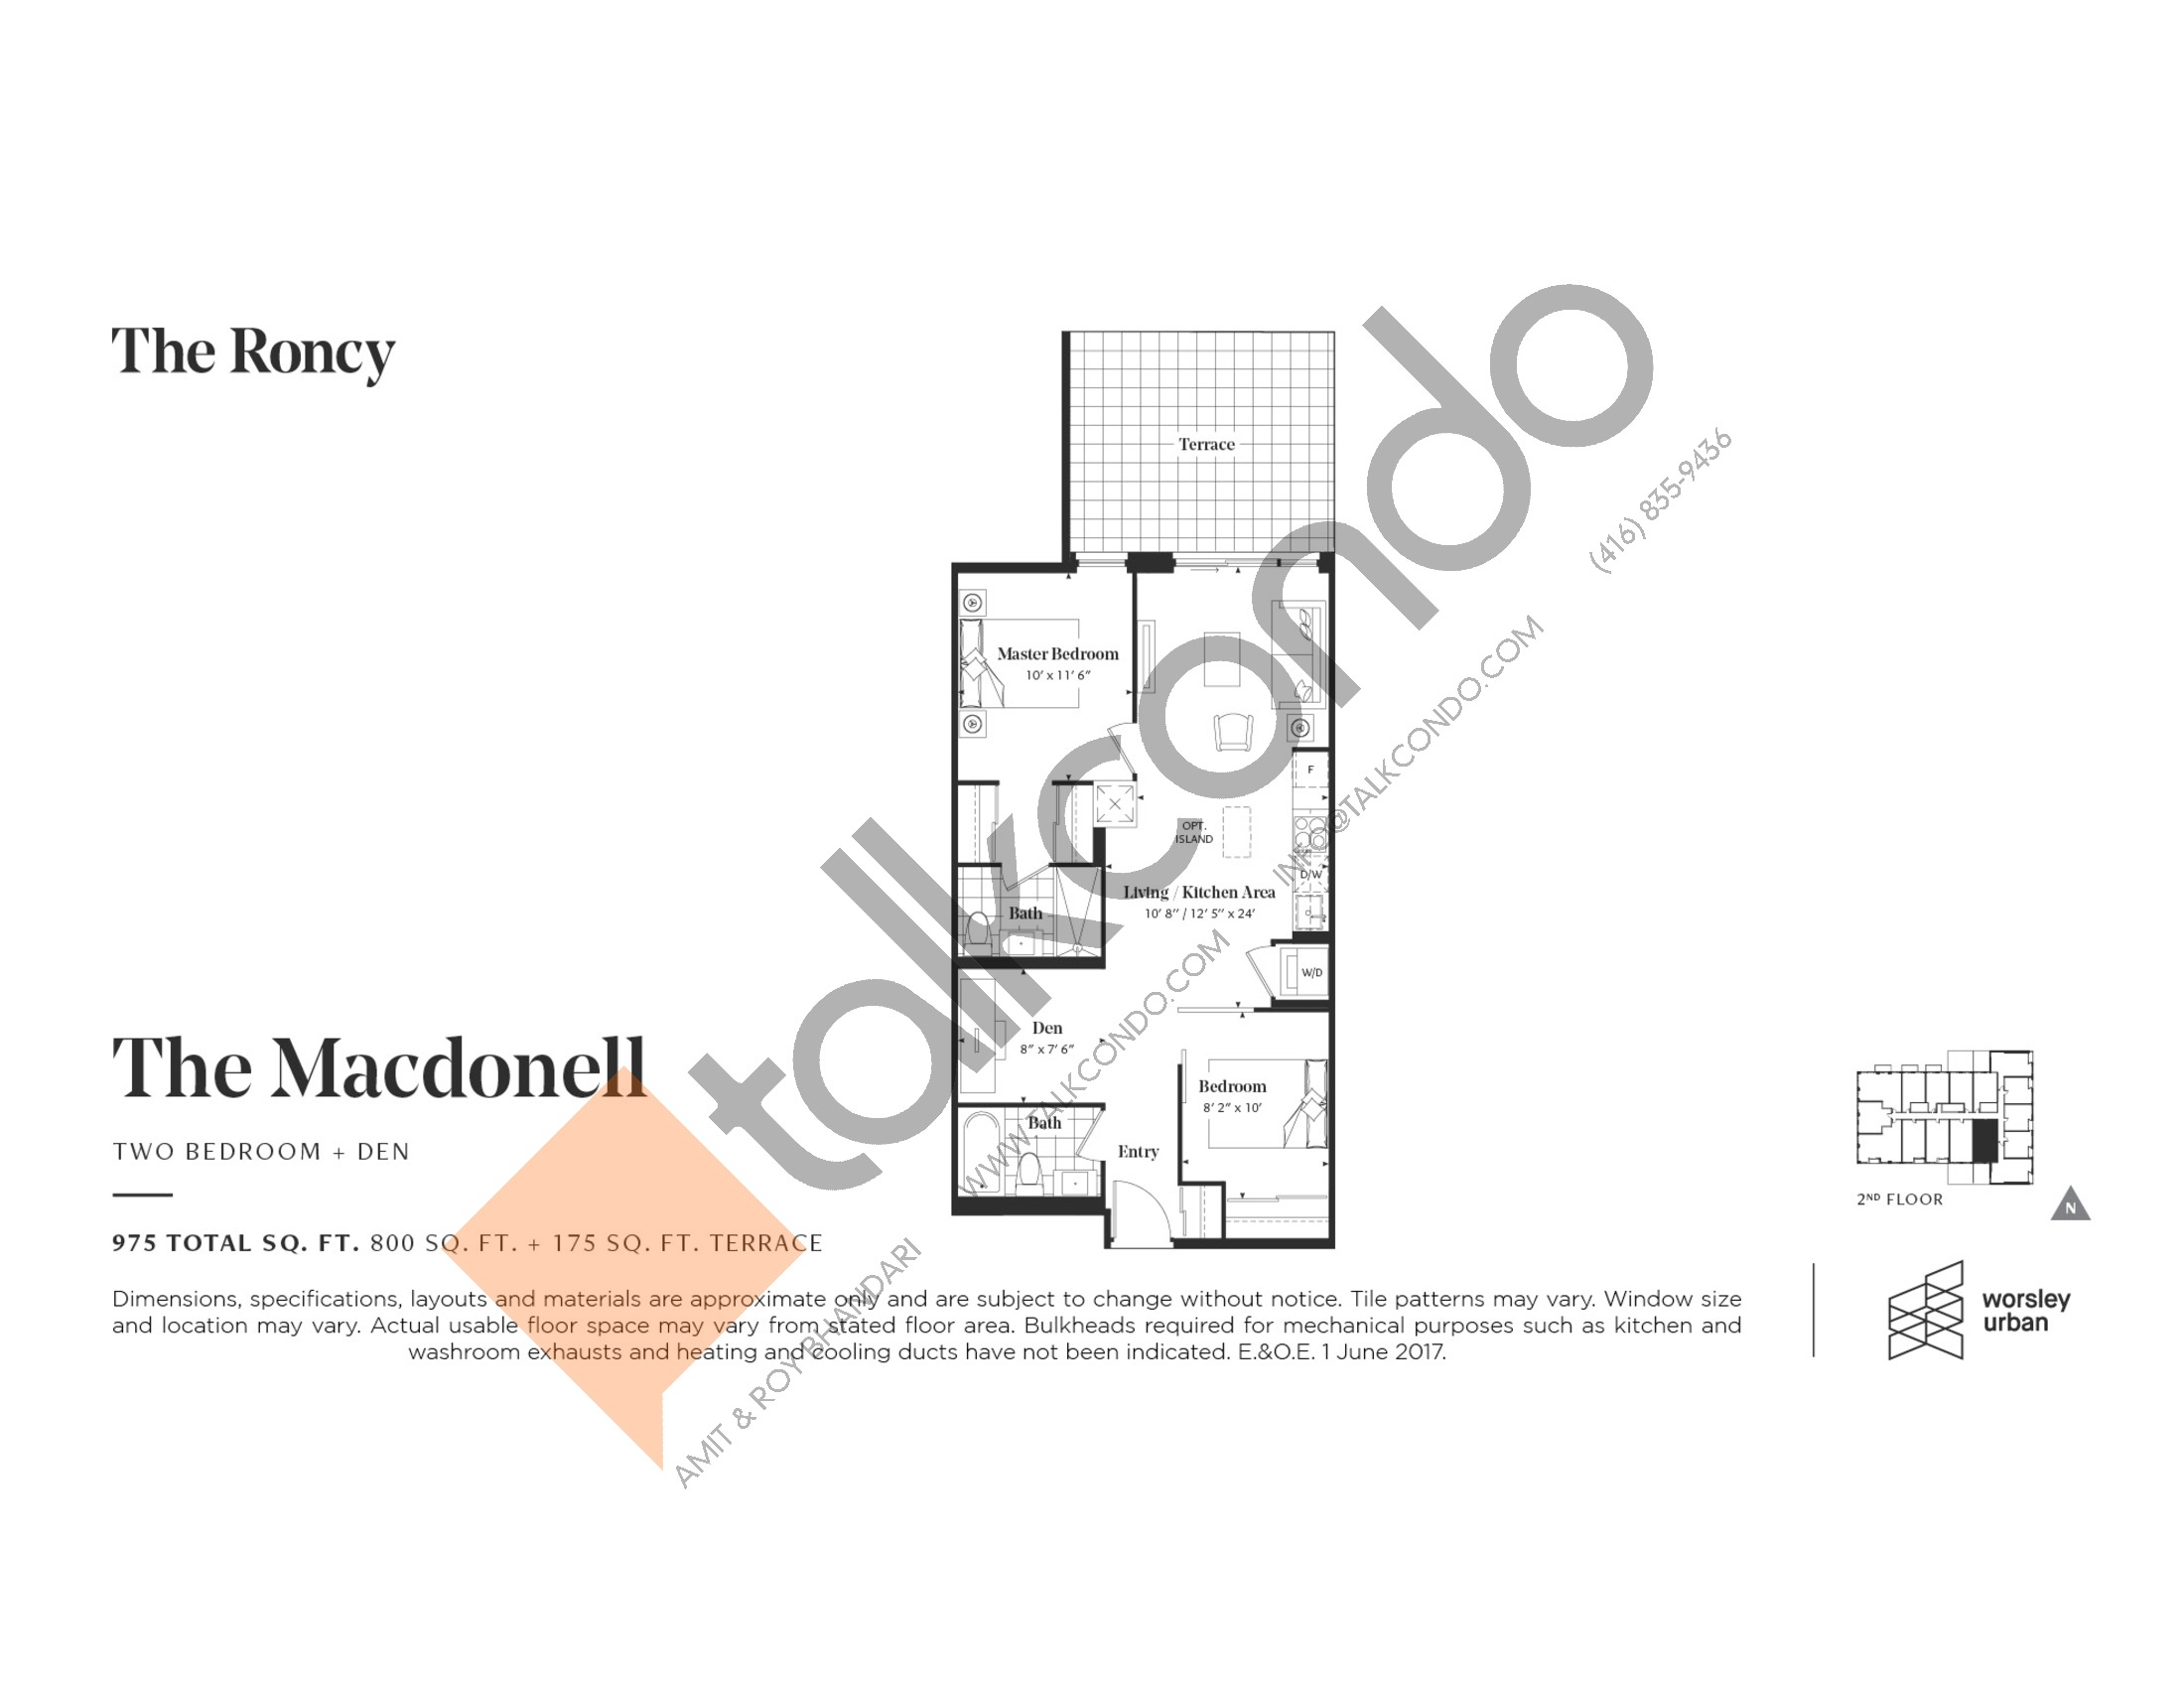 The Macdonell Floor Plan at The Roncy Condos - 800 sq.ft